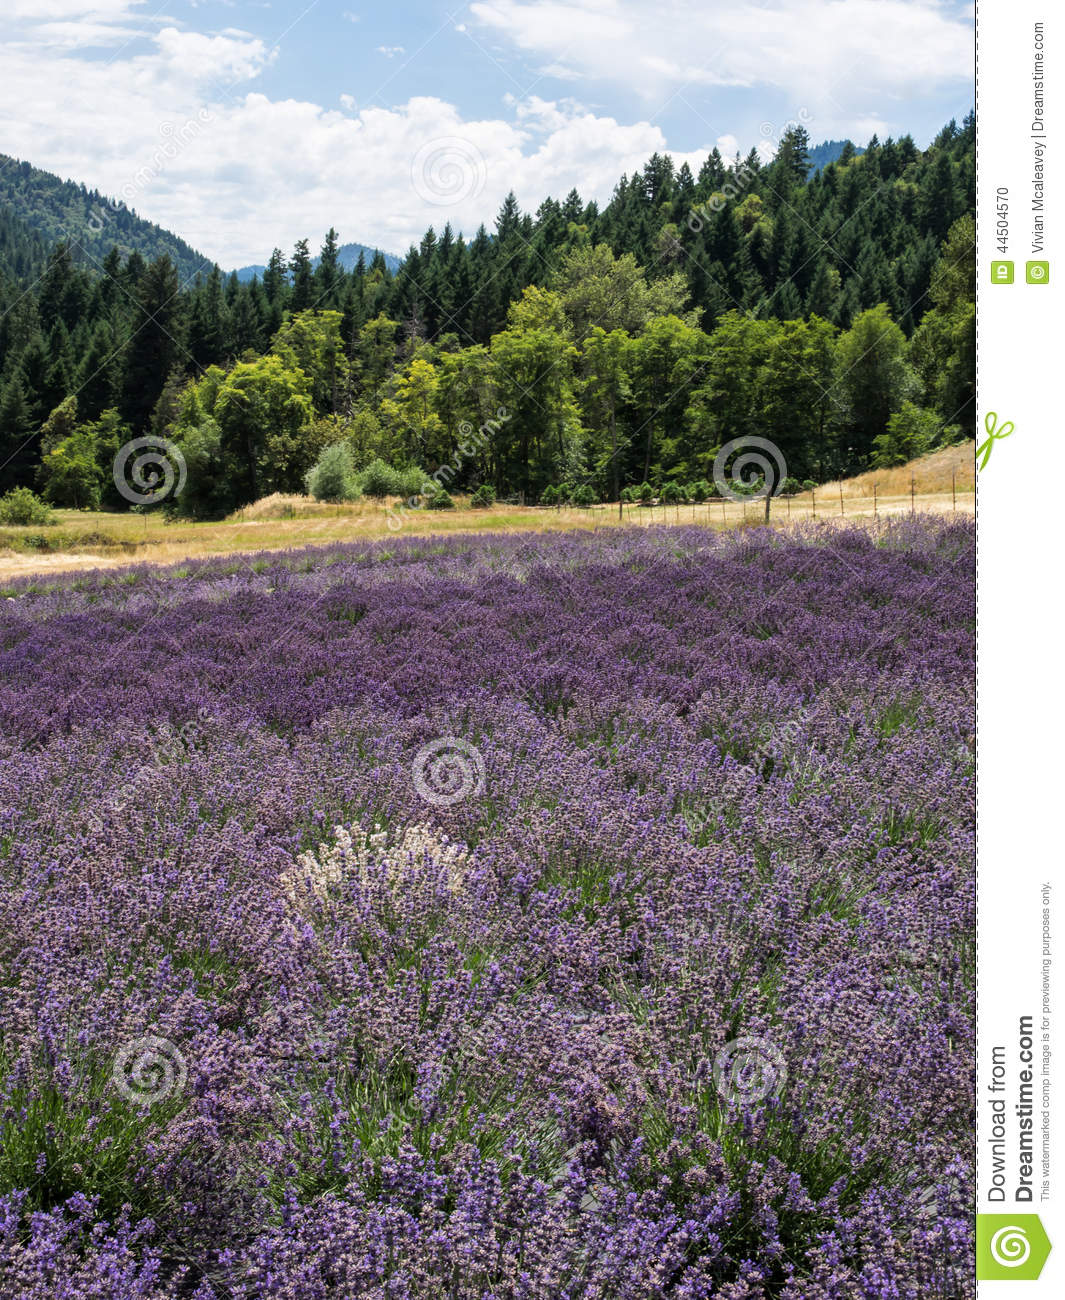 Lavender farm in bloom stock photo  Image of hill, ecosystem